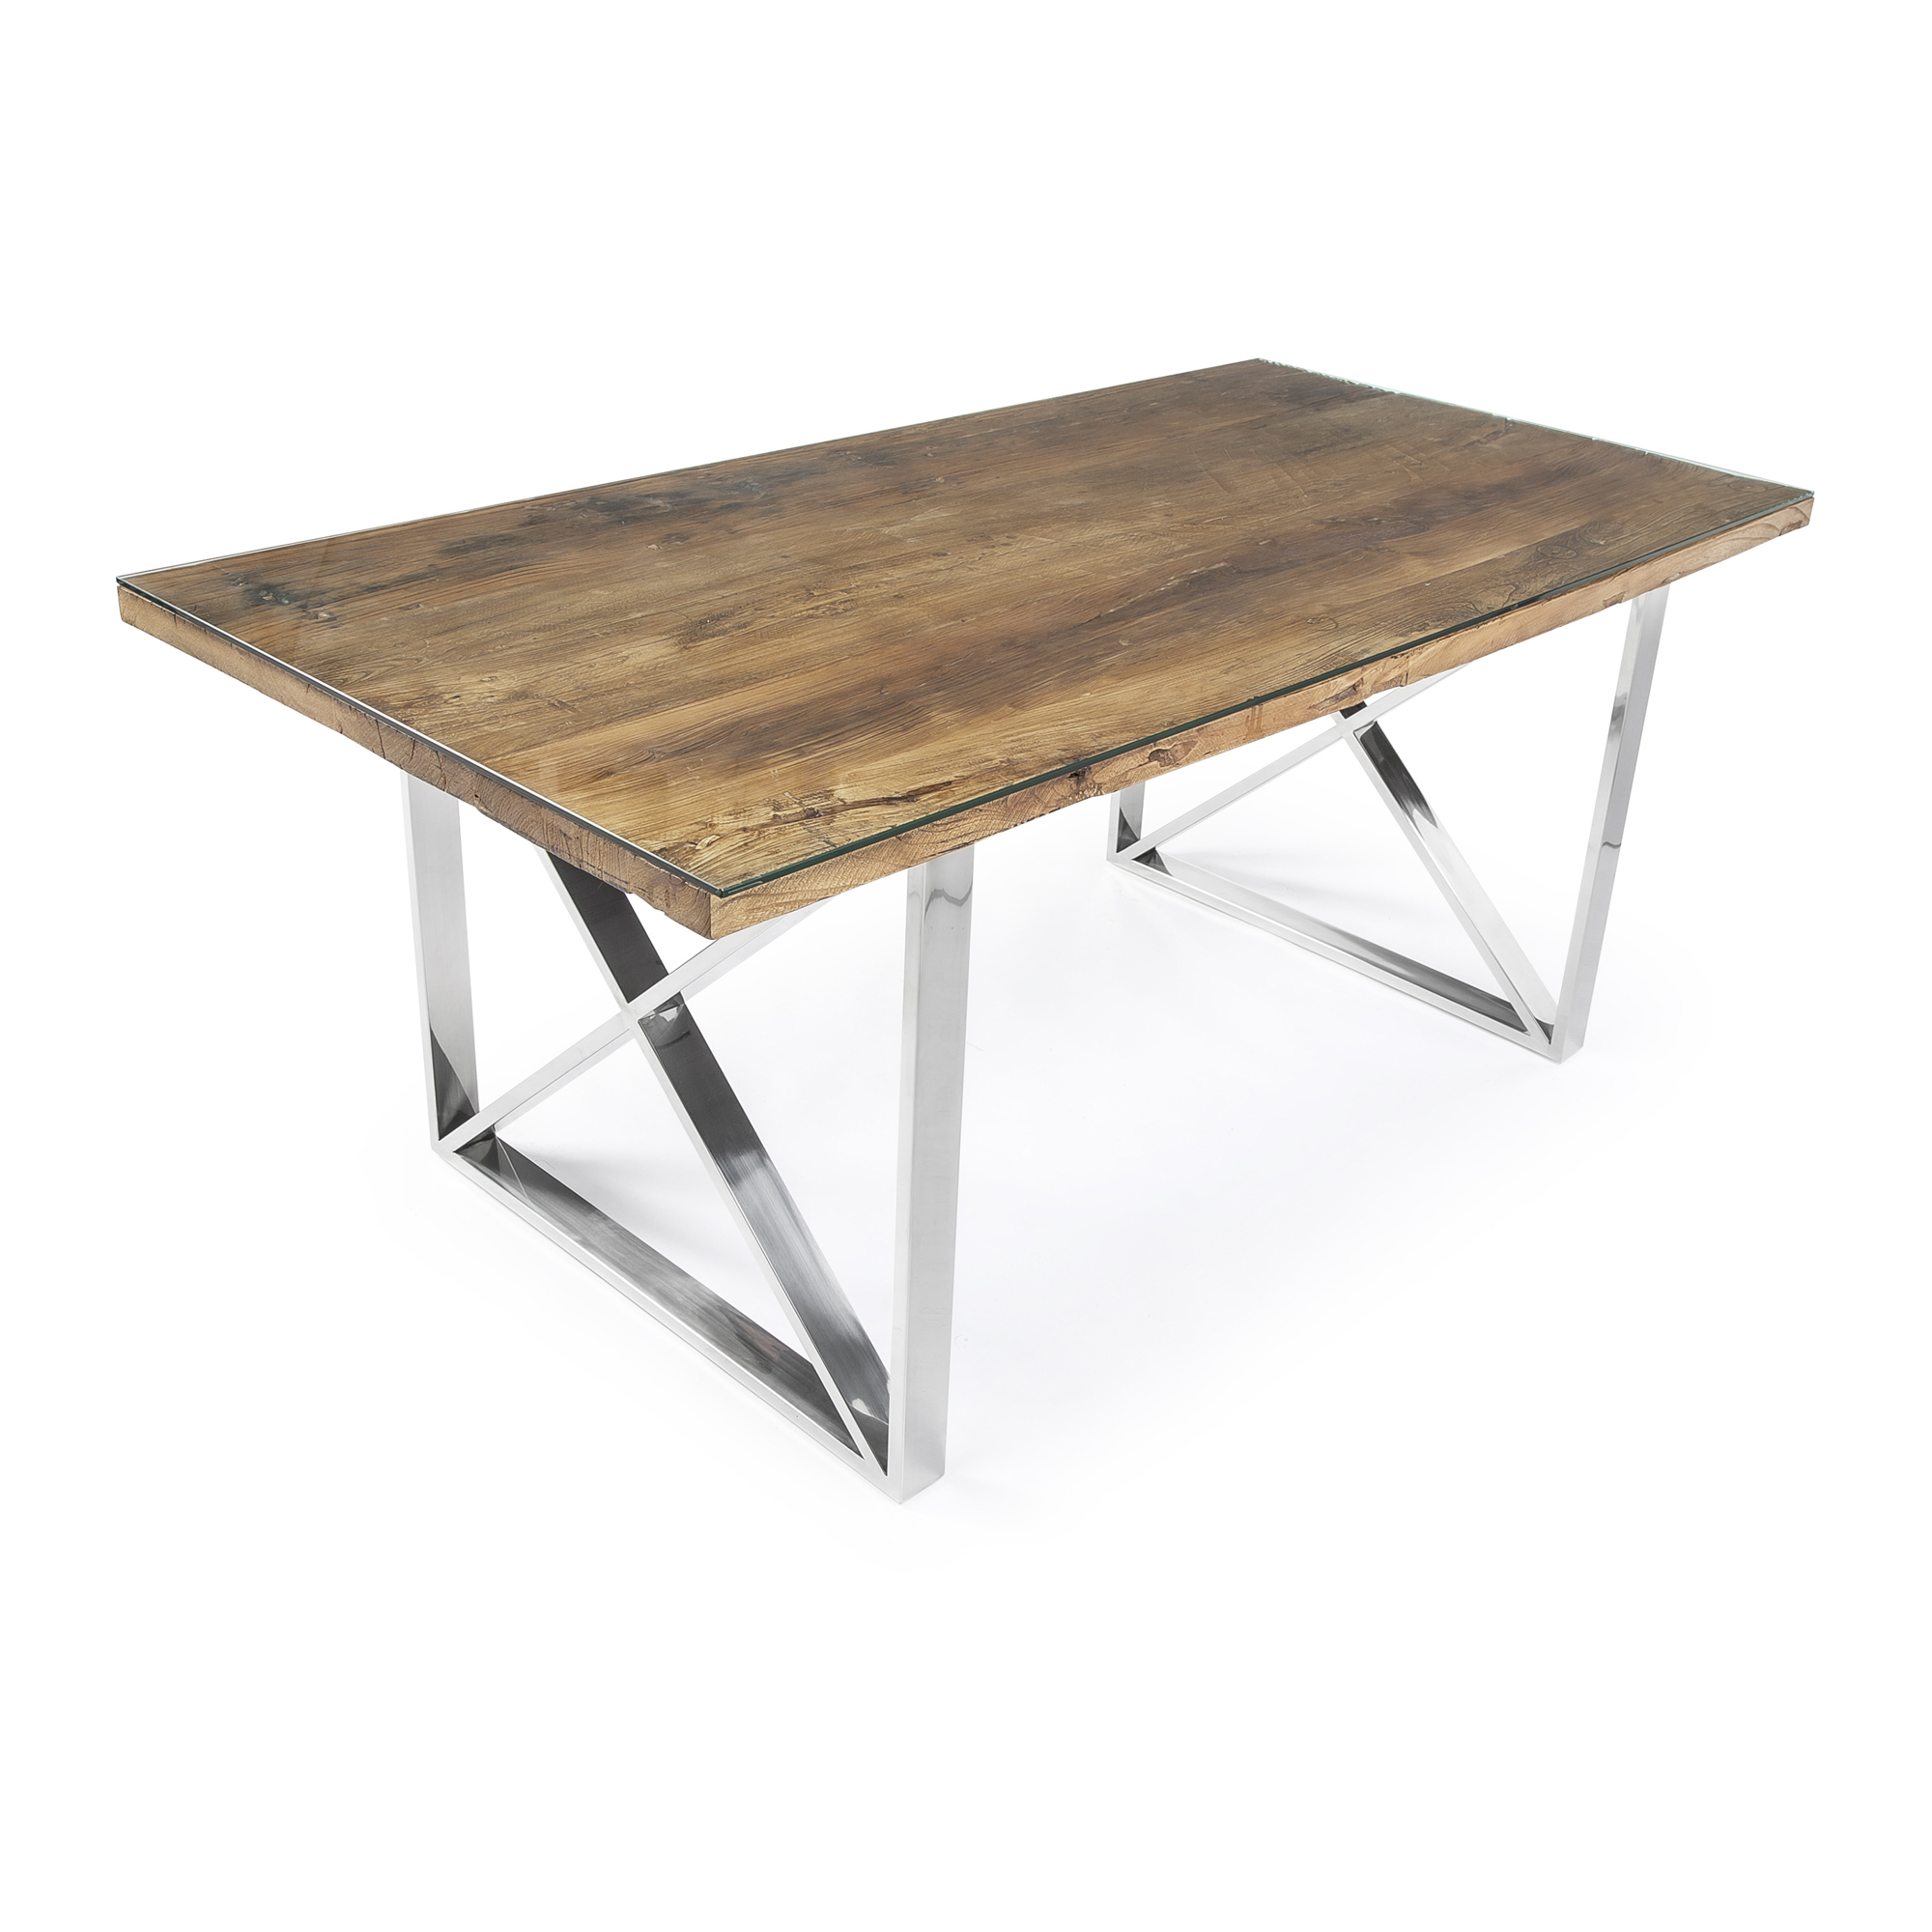 1.8M Tuscany Polished Steel Dining Table Reclaimed Elm Top